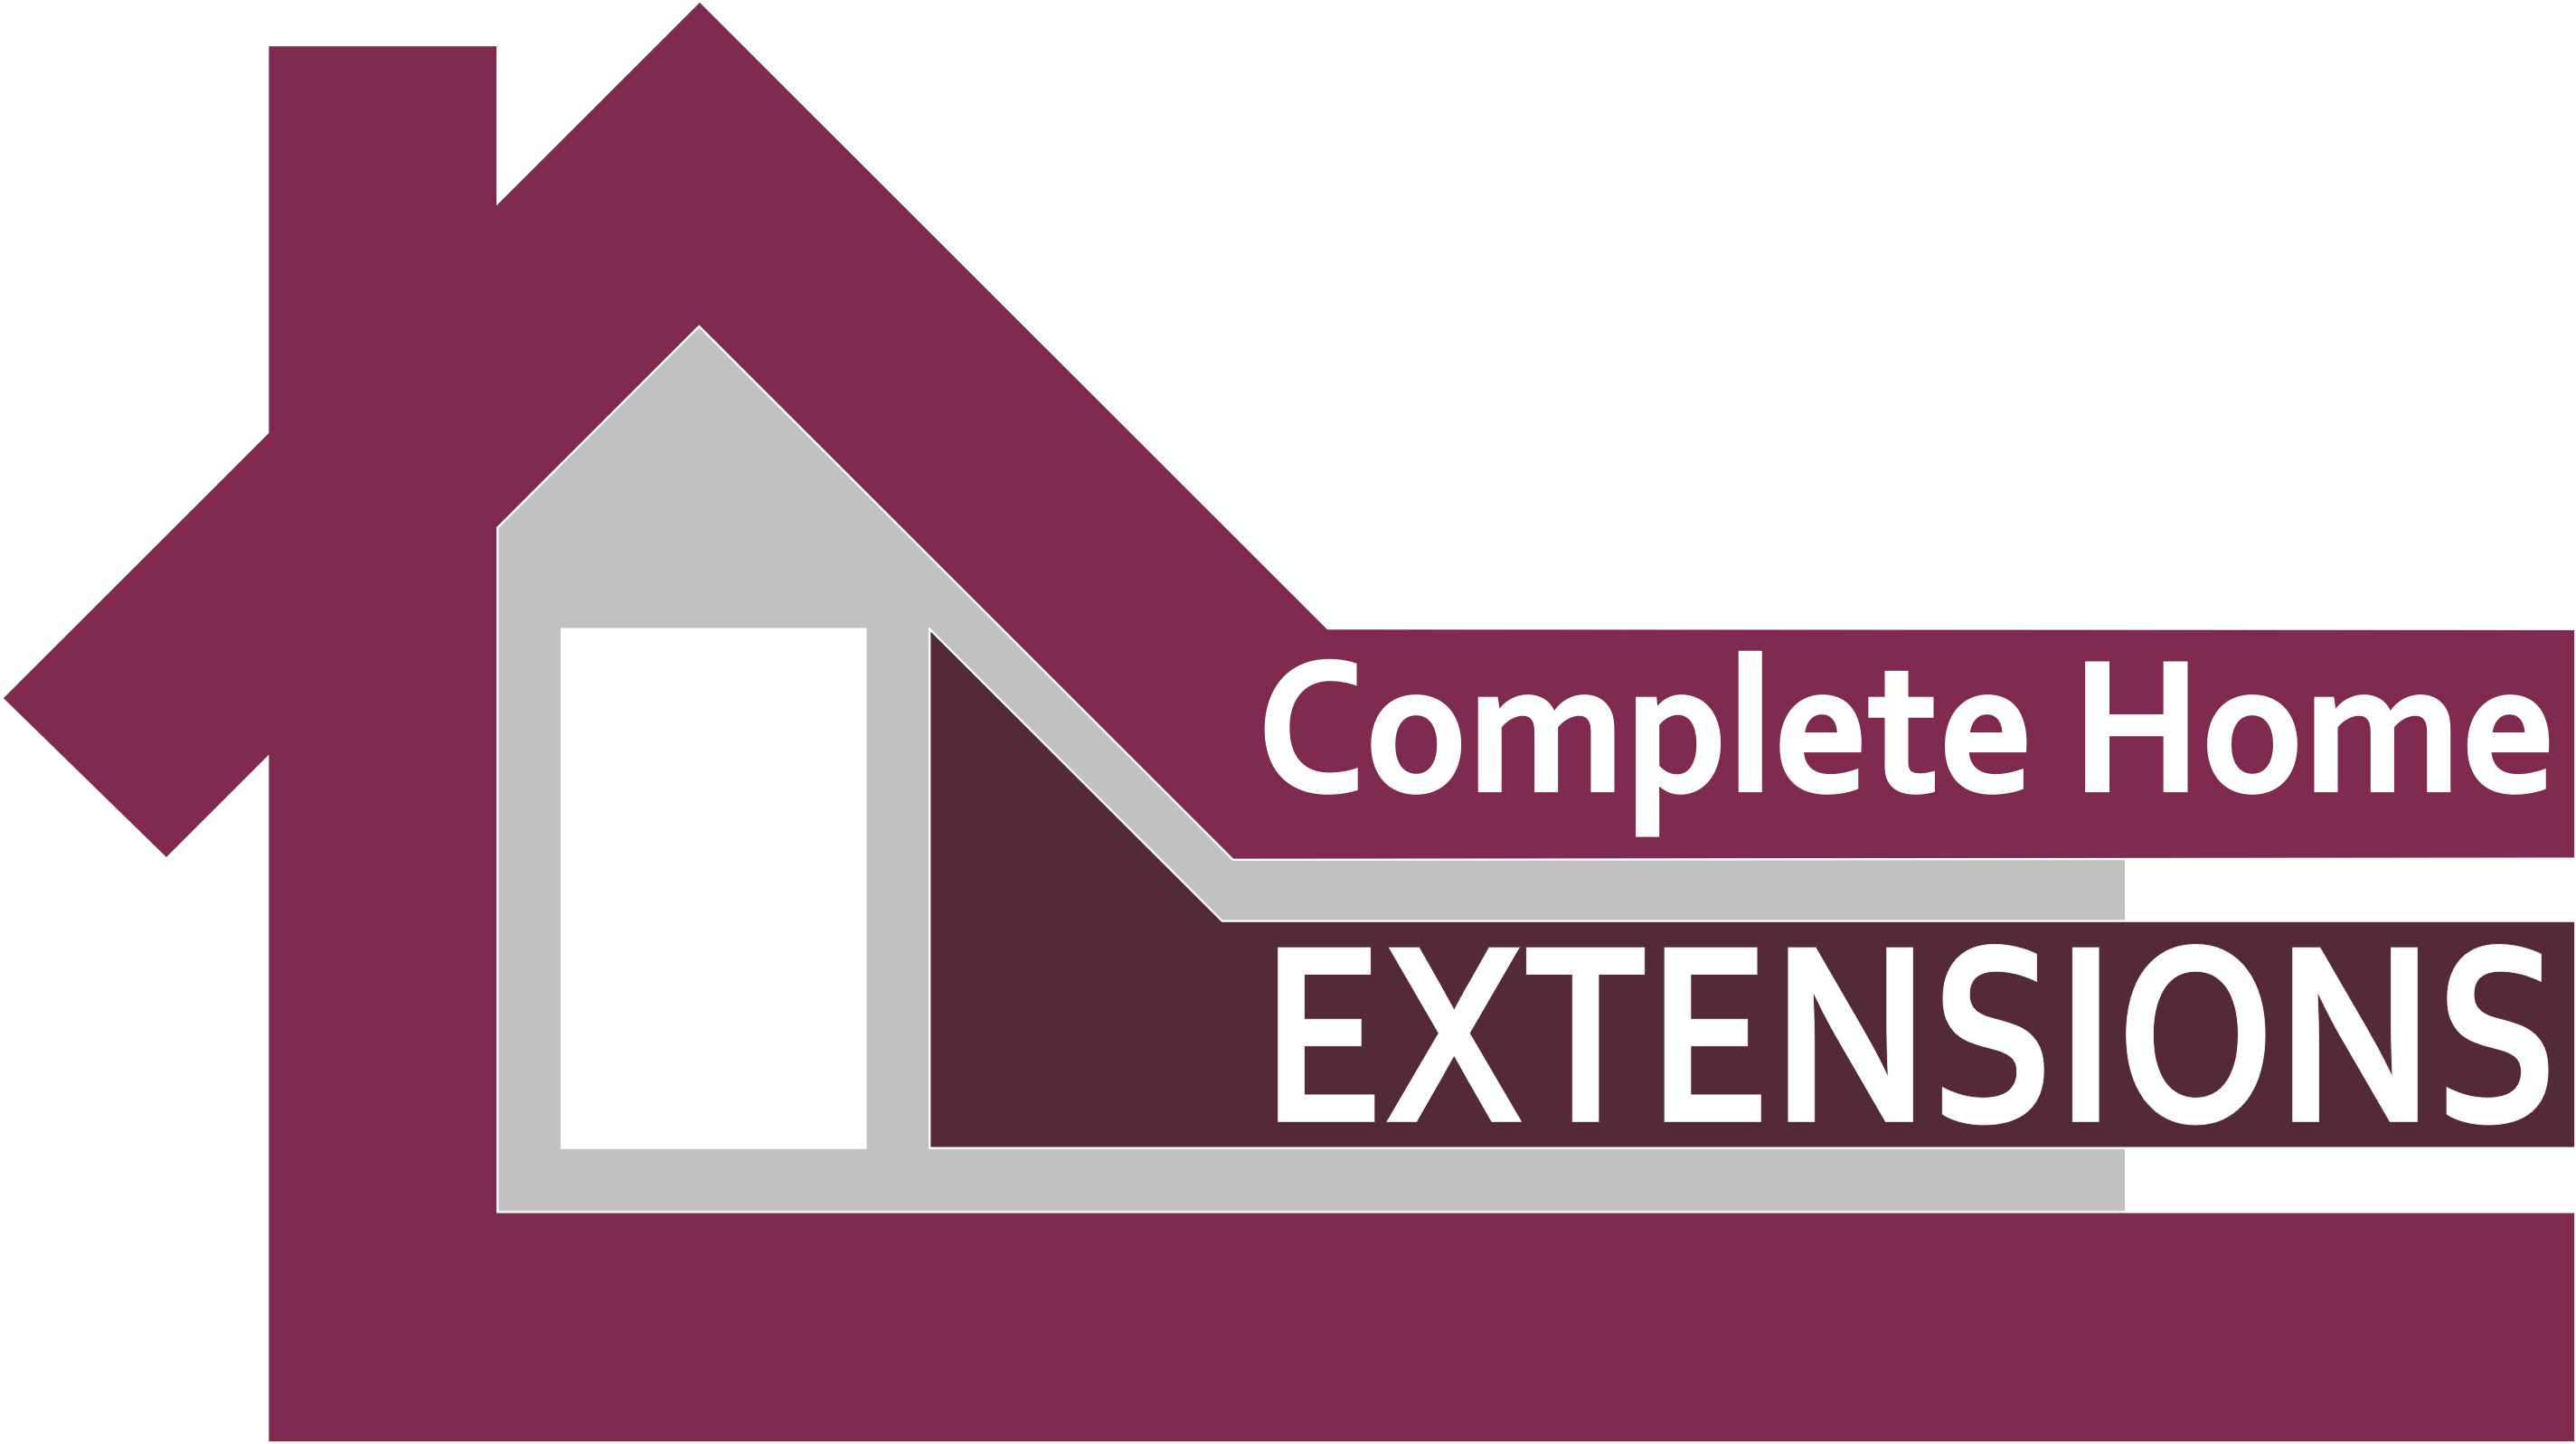 Complete Home Extensions